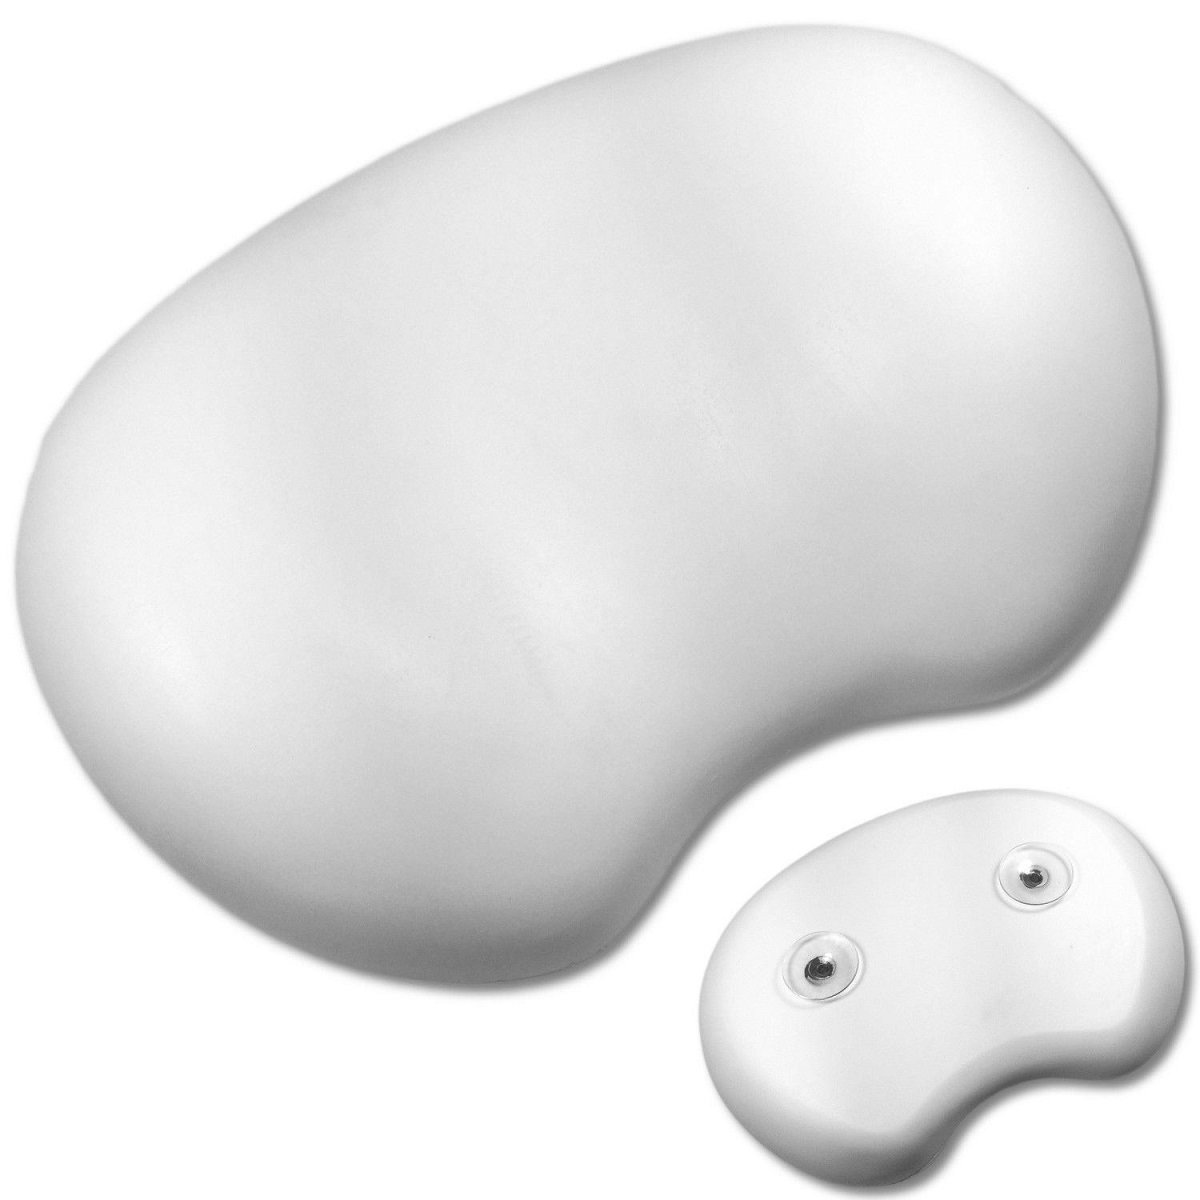 Spa Pillow Bathtub Ultimate Comfort and Spa Relaxation With Heavy Duty Suction Cups, Neck Pillow Bathtub